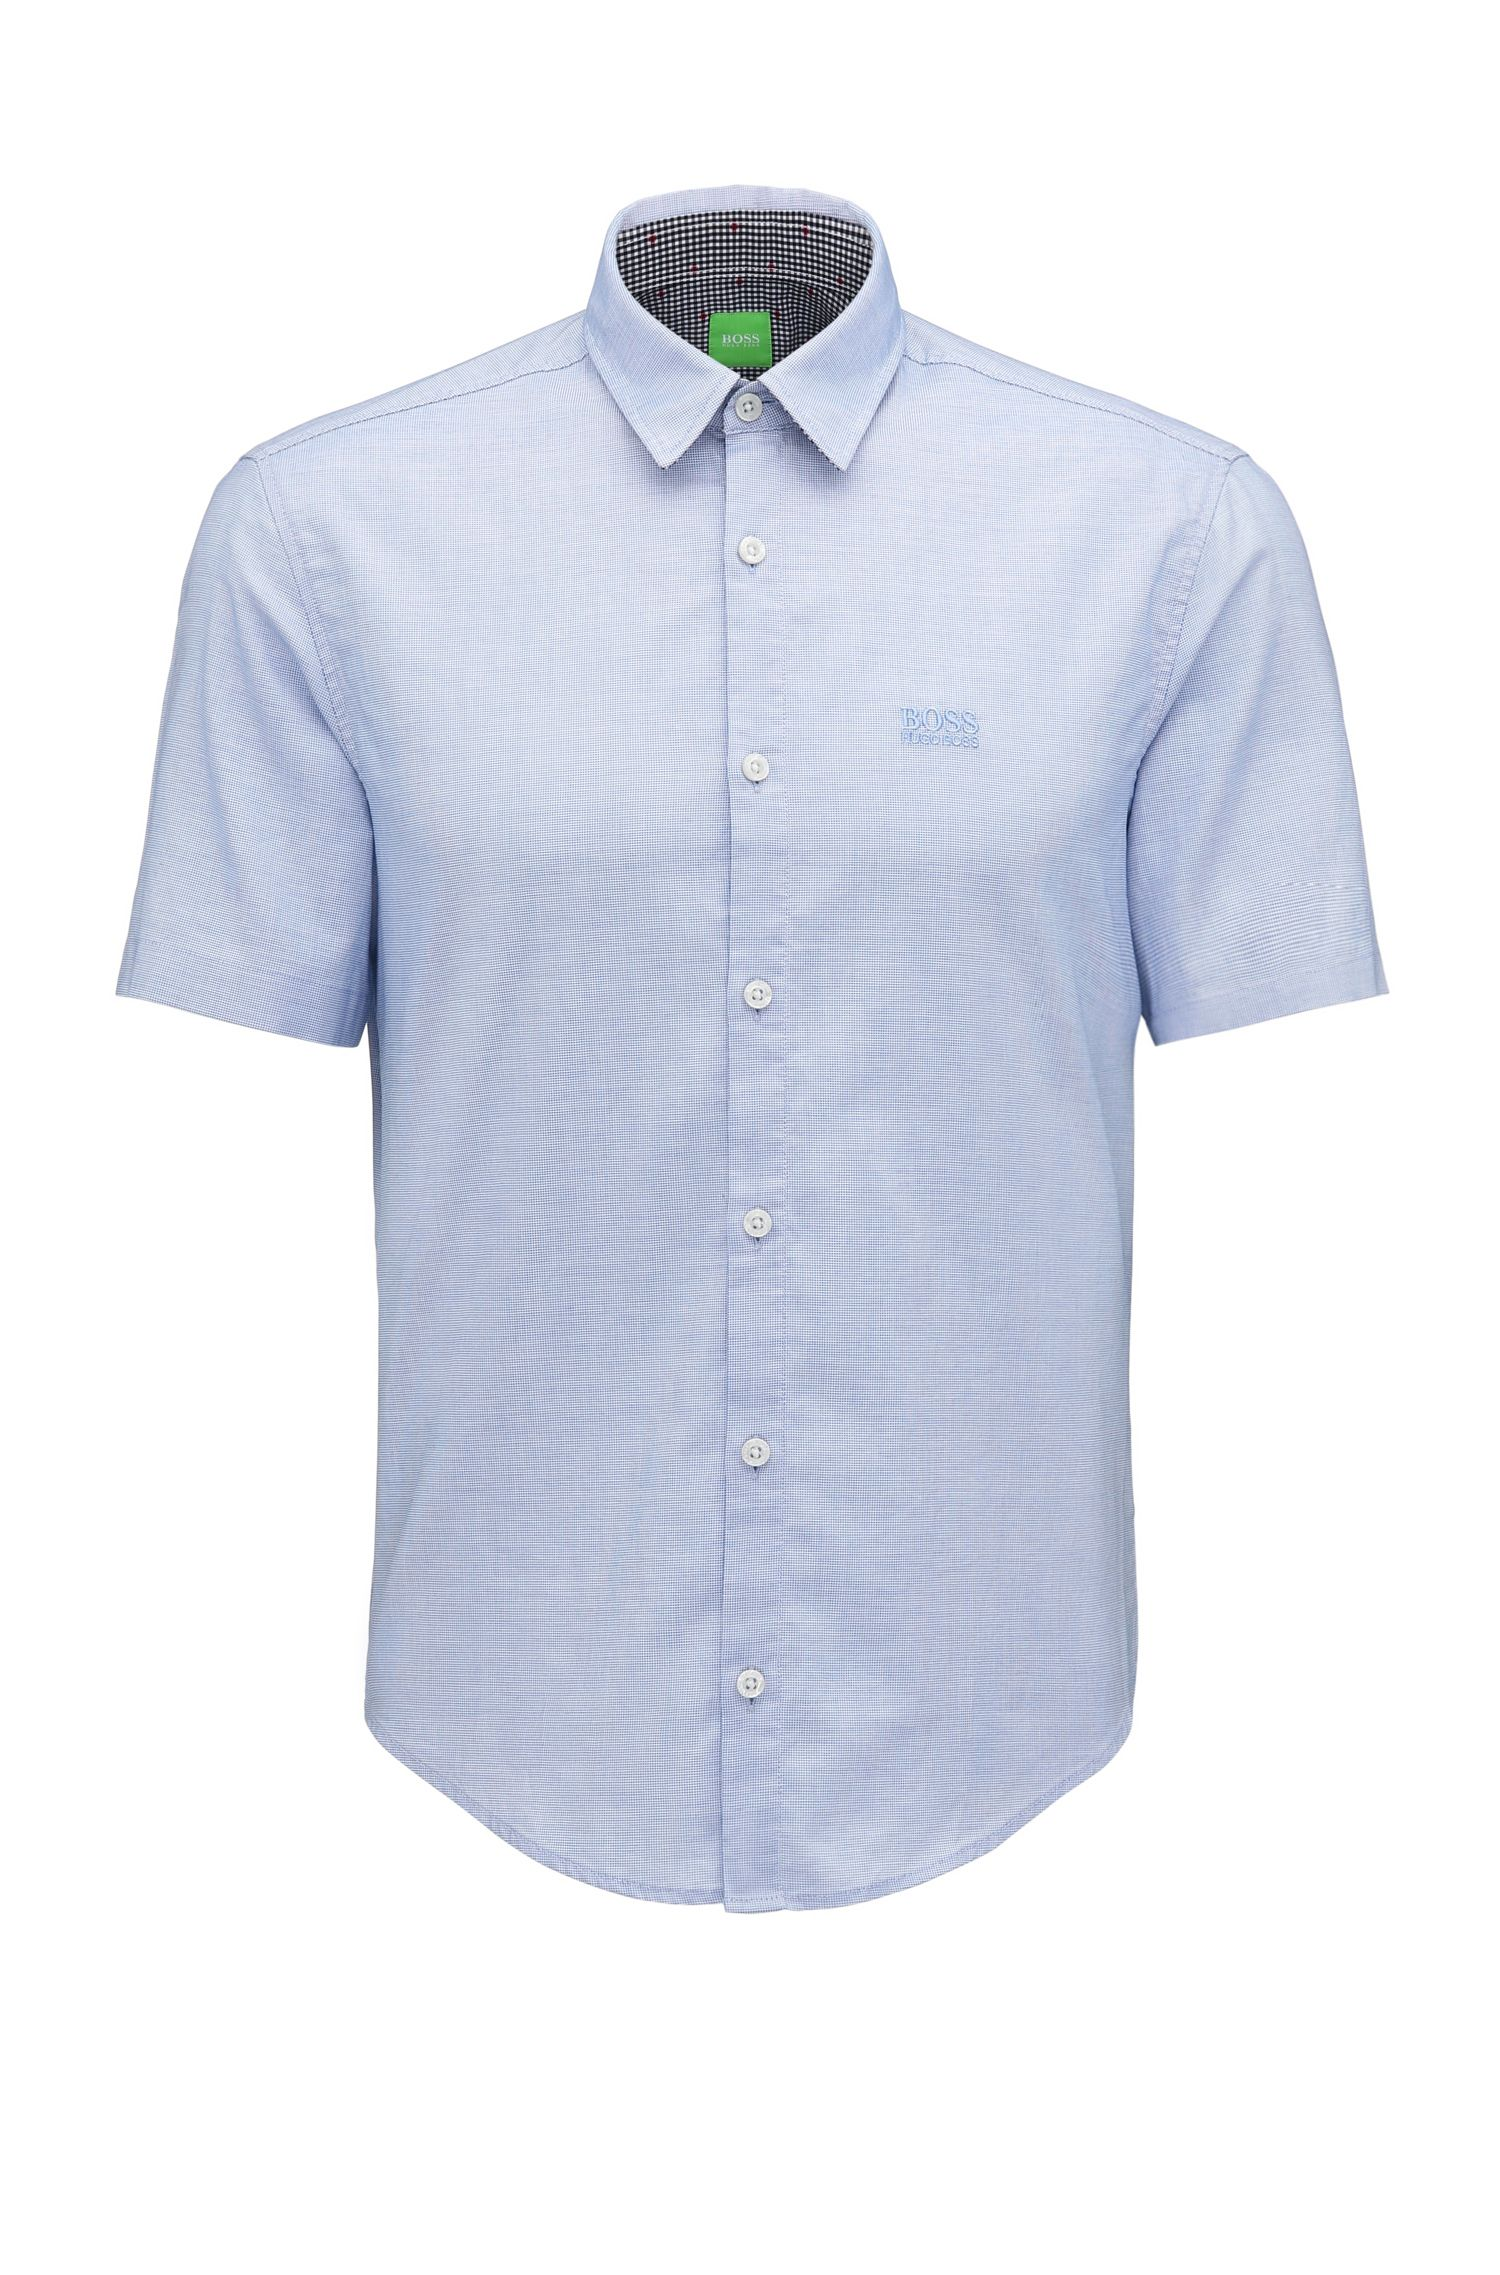 End-On-End Cotton Button Down Shirt, Regular Fit | C-Busterino